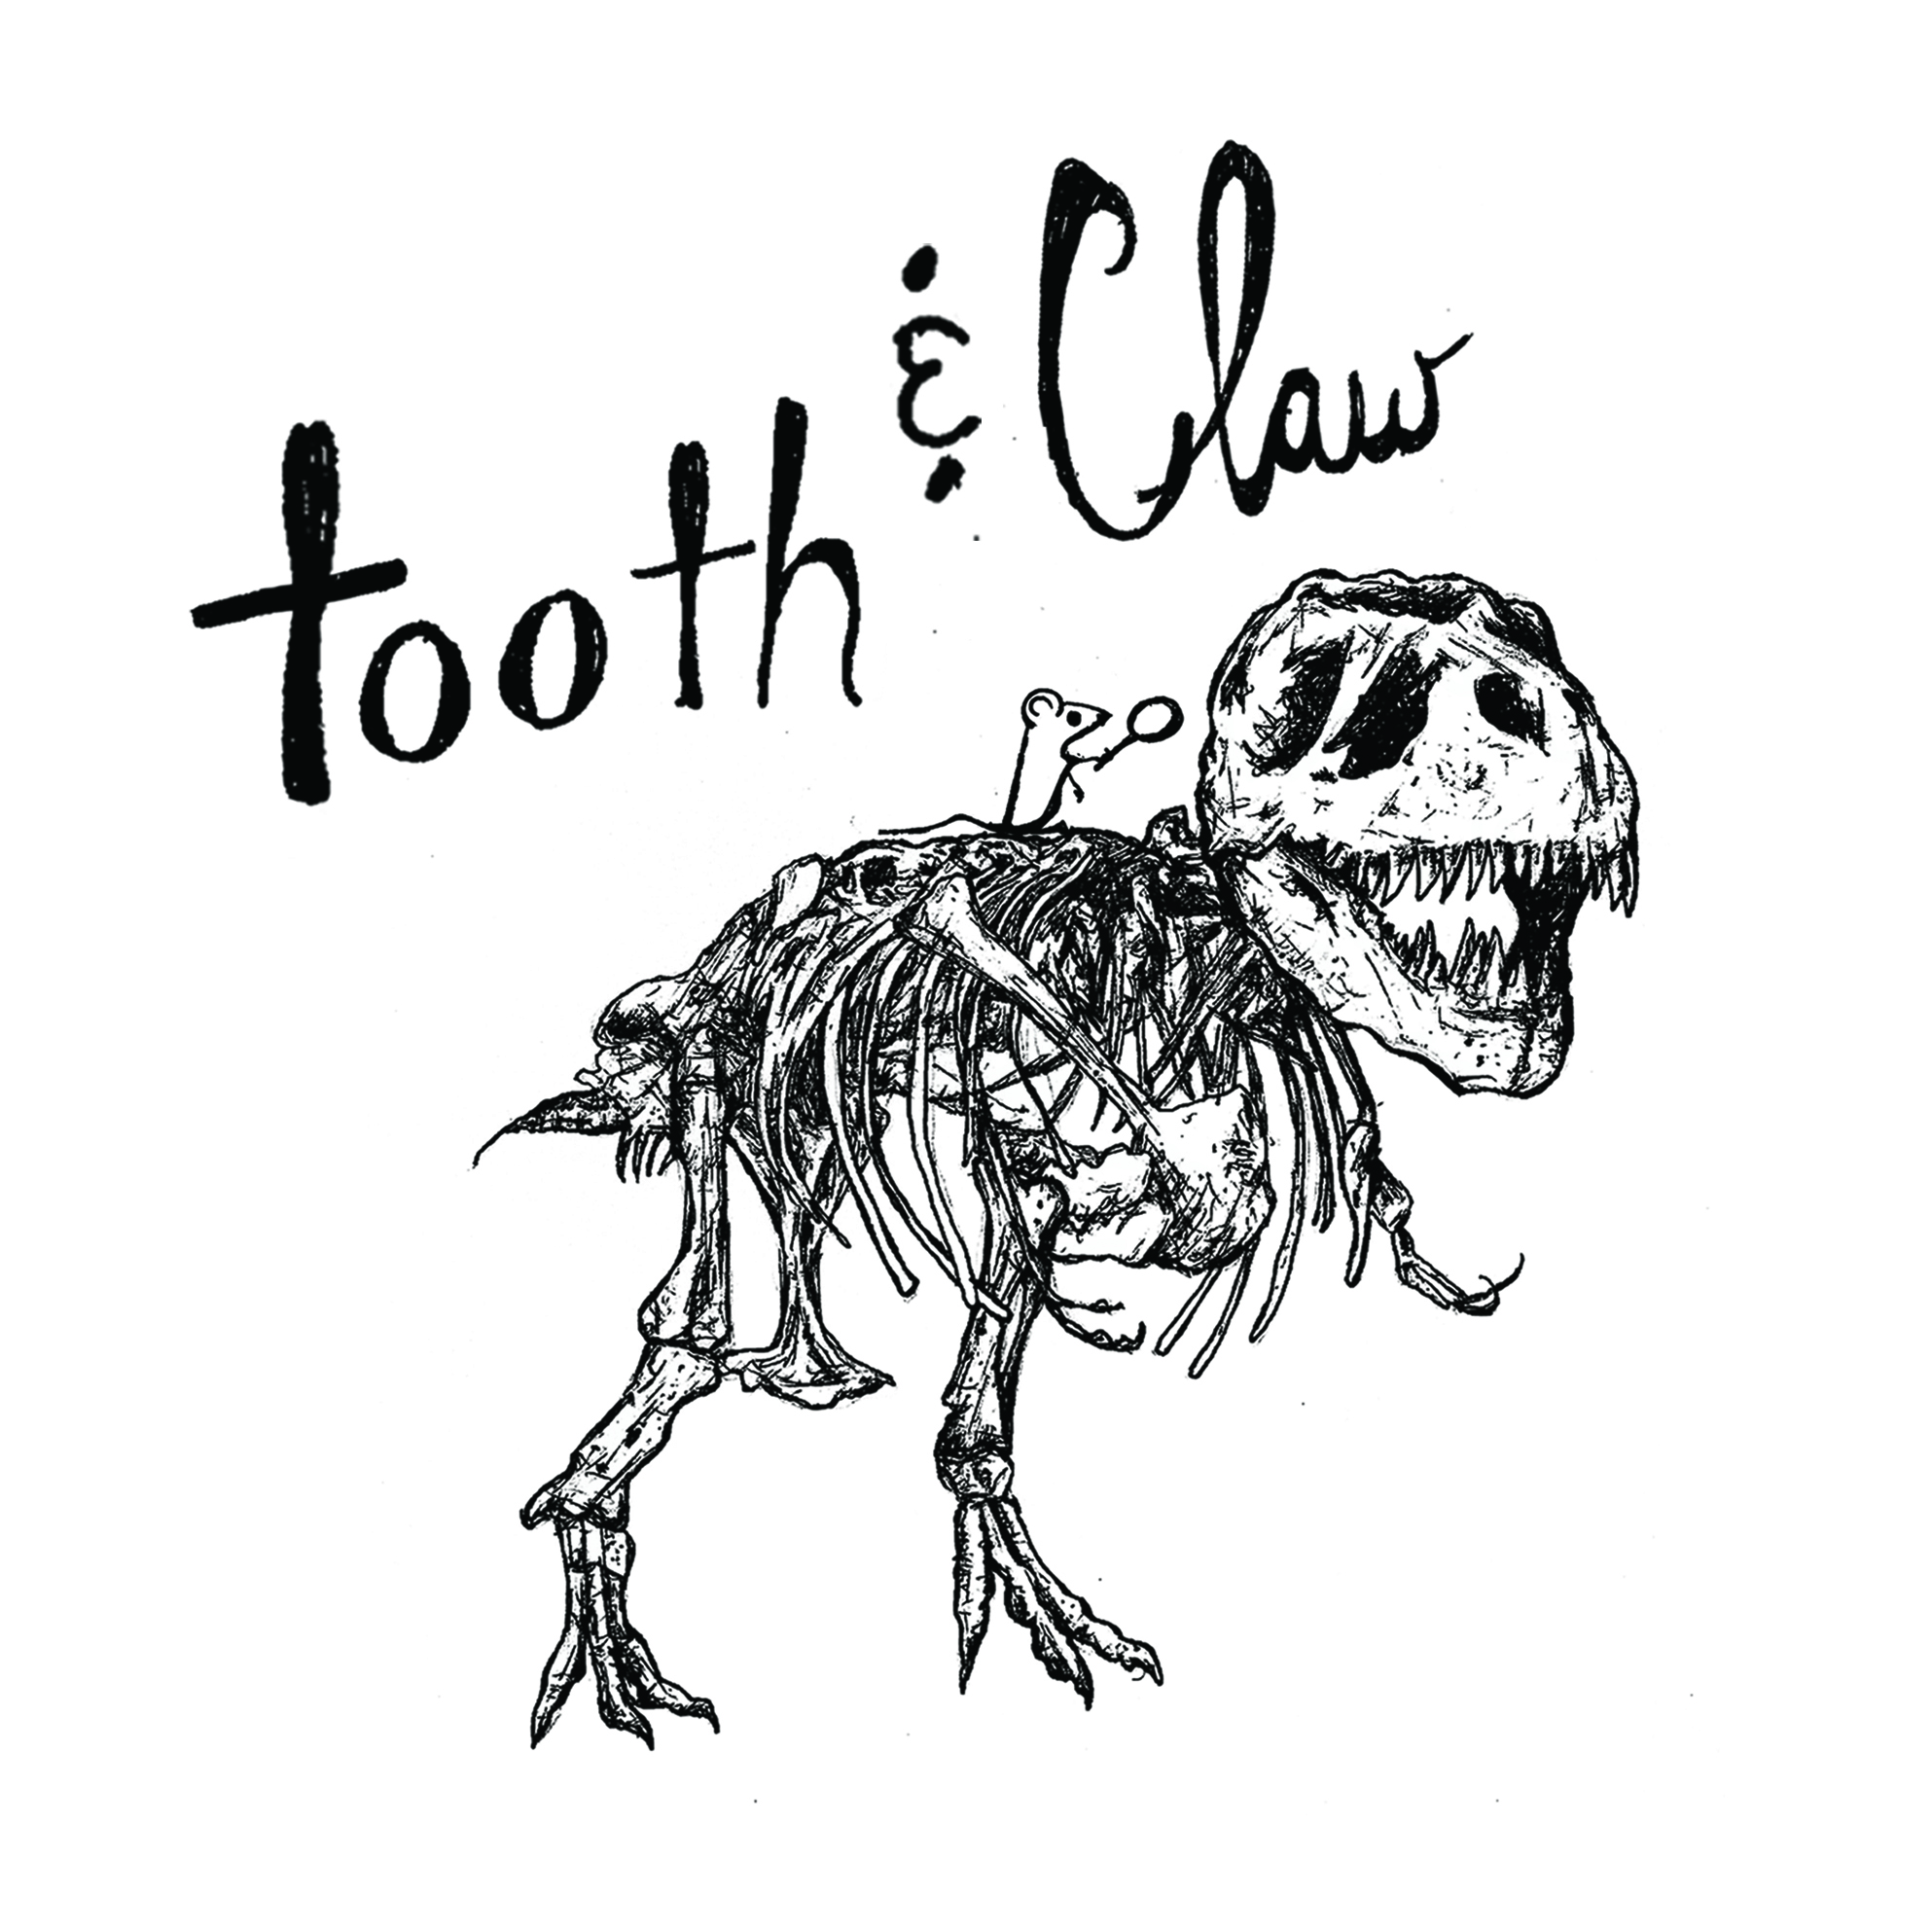 Tooth_and_Claw_keg_cap.jpg